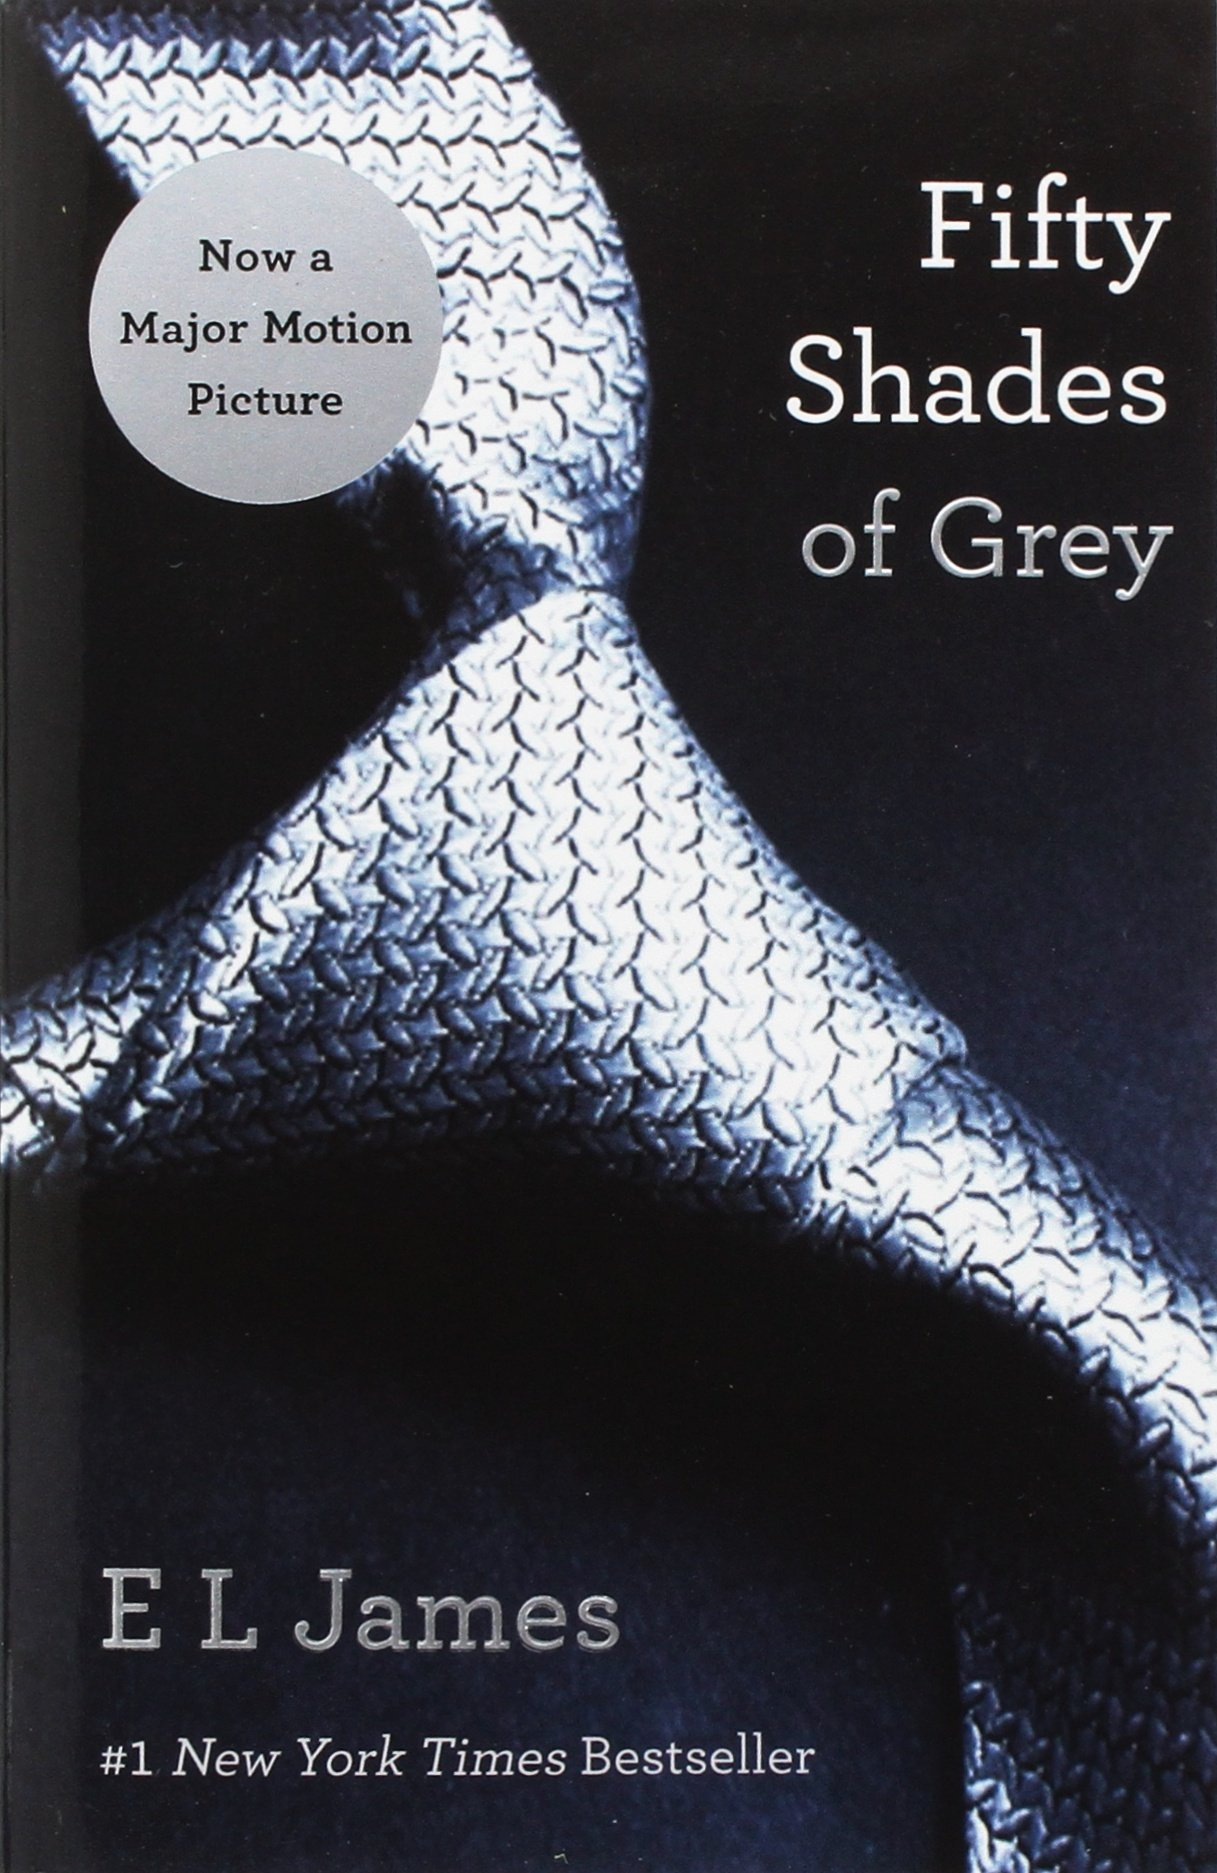 fifty shades of grey book one of the fifty shades trilogy fifty  fifty shades of grey book one of the fifty shades trilogy fifty shades of grey series e l james 9780345803481 amazon com books